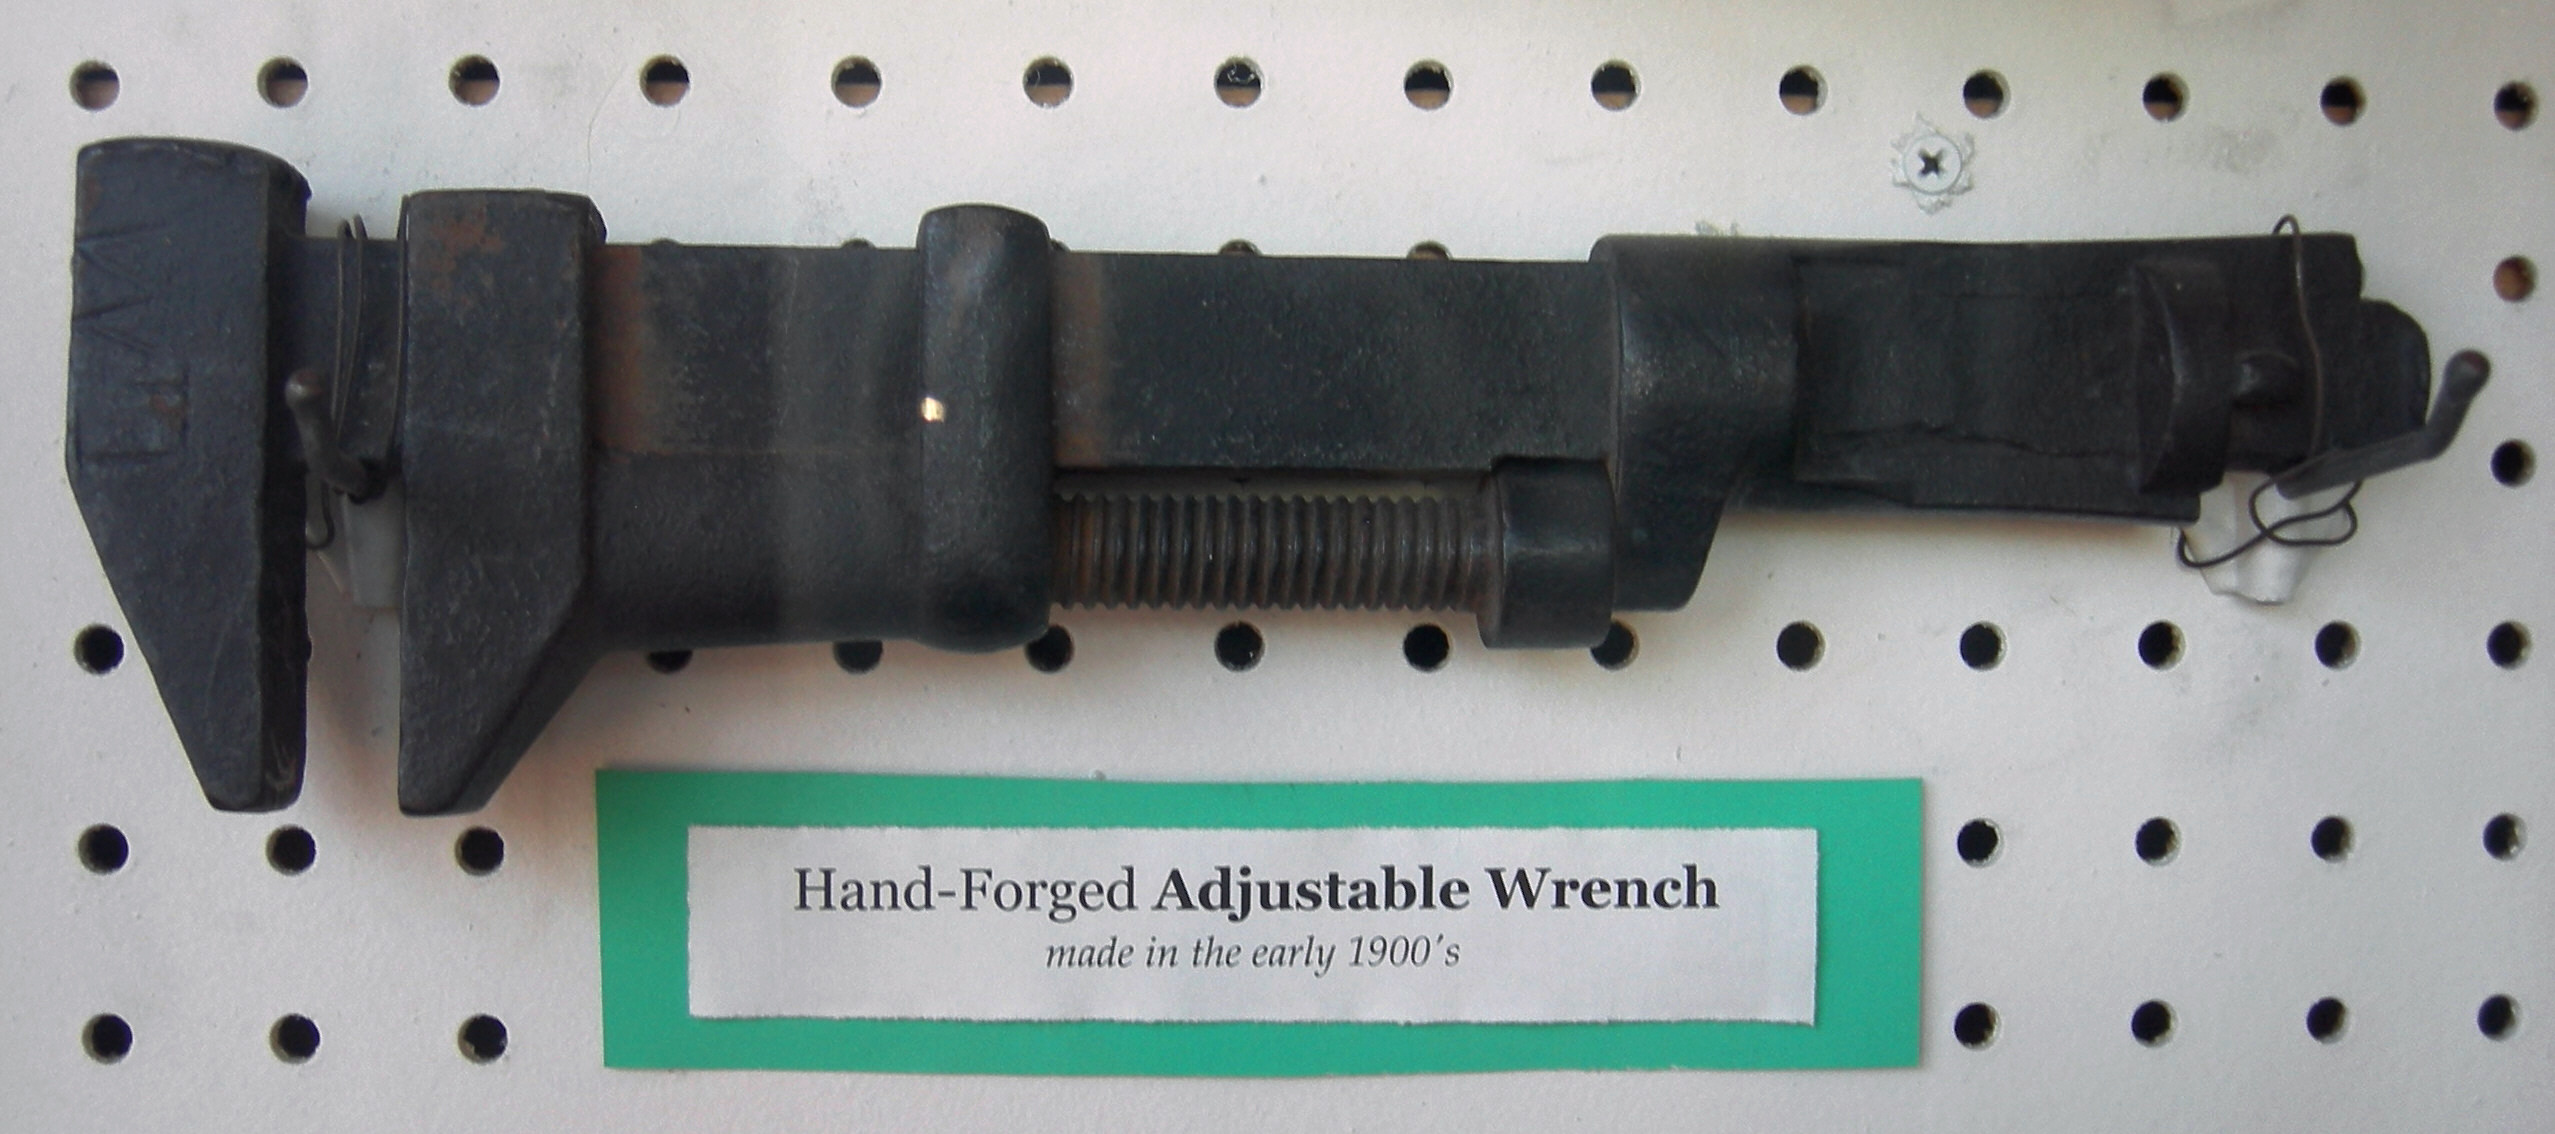 Monkey wrench - Wikipedia